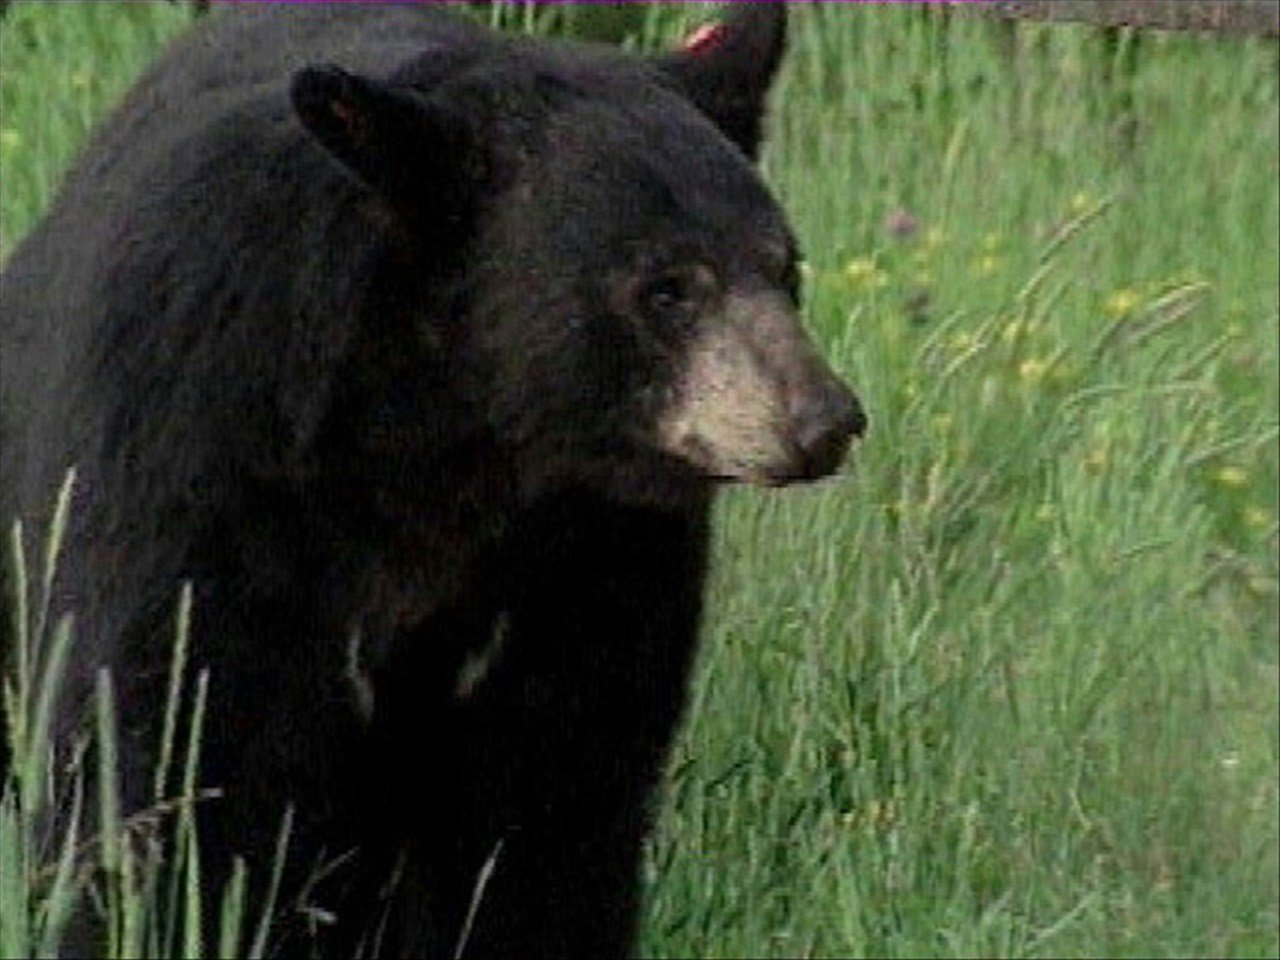 File photo of black bear. Courtesy of MGN Online